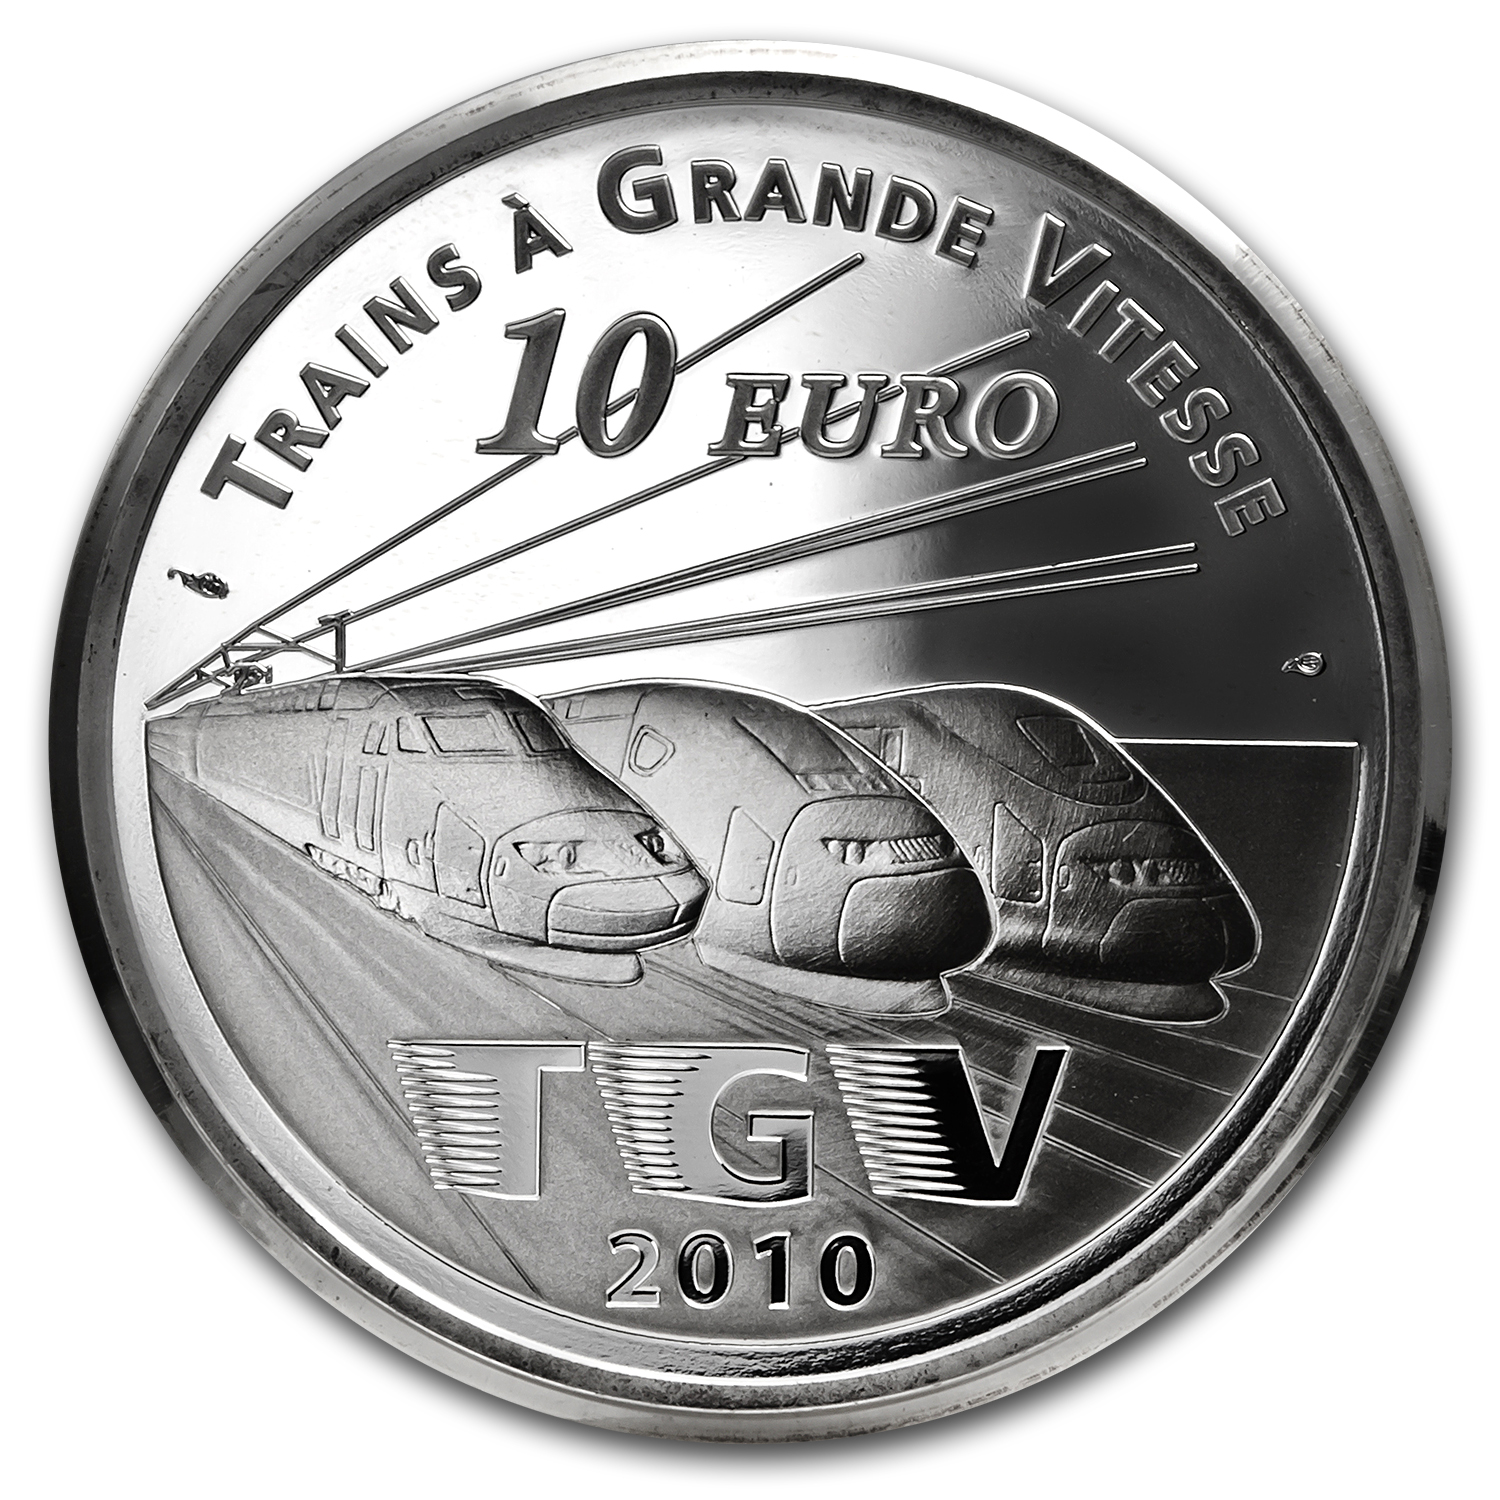 2010 €10 Silver Proof - Trains and Stations -Lille Europe TGV